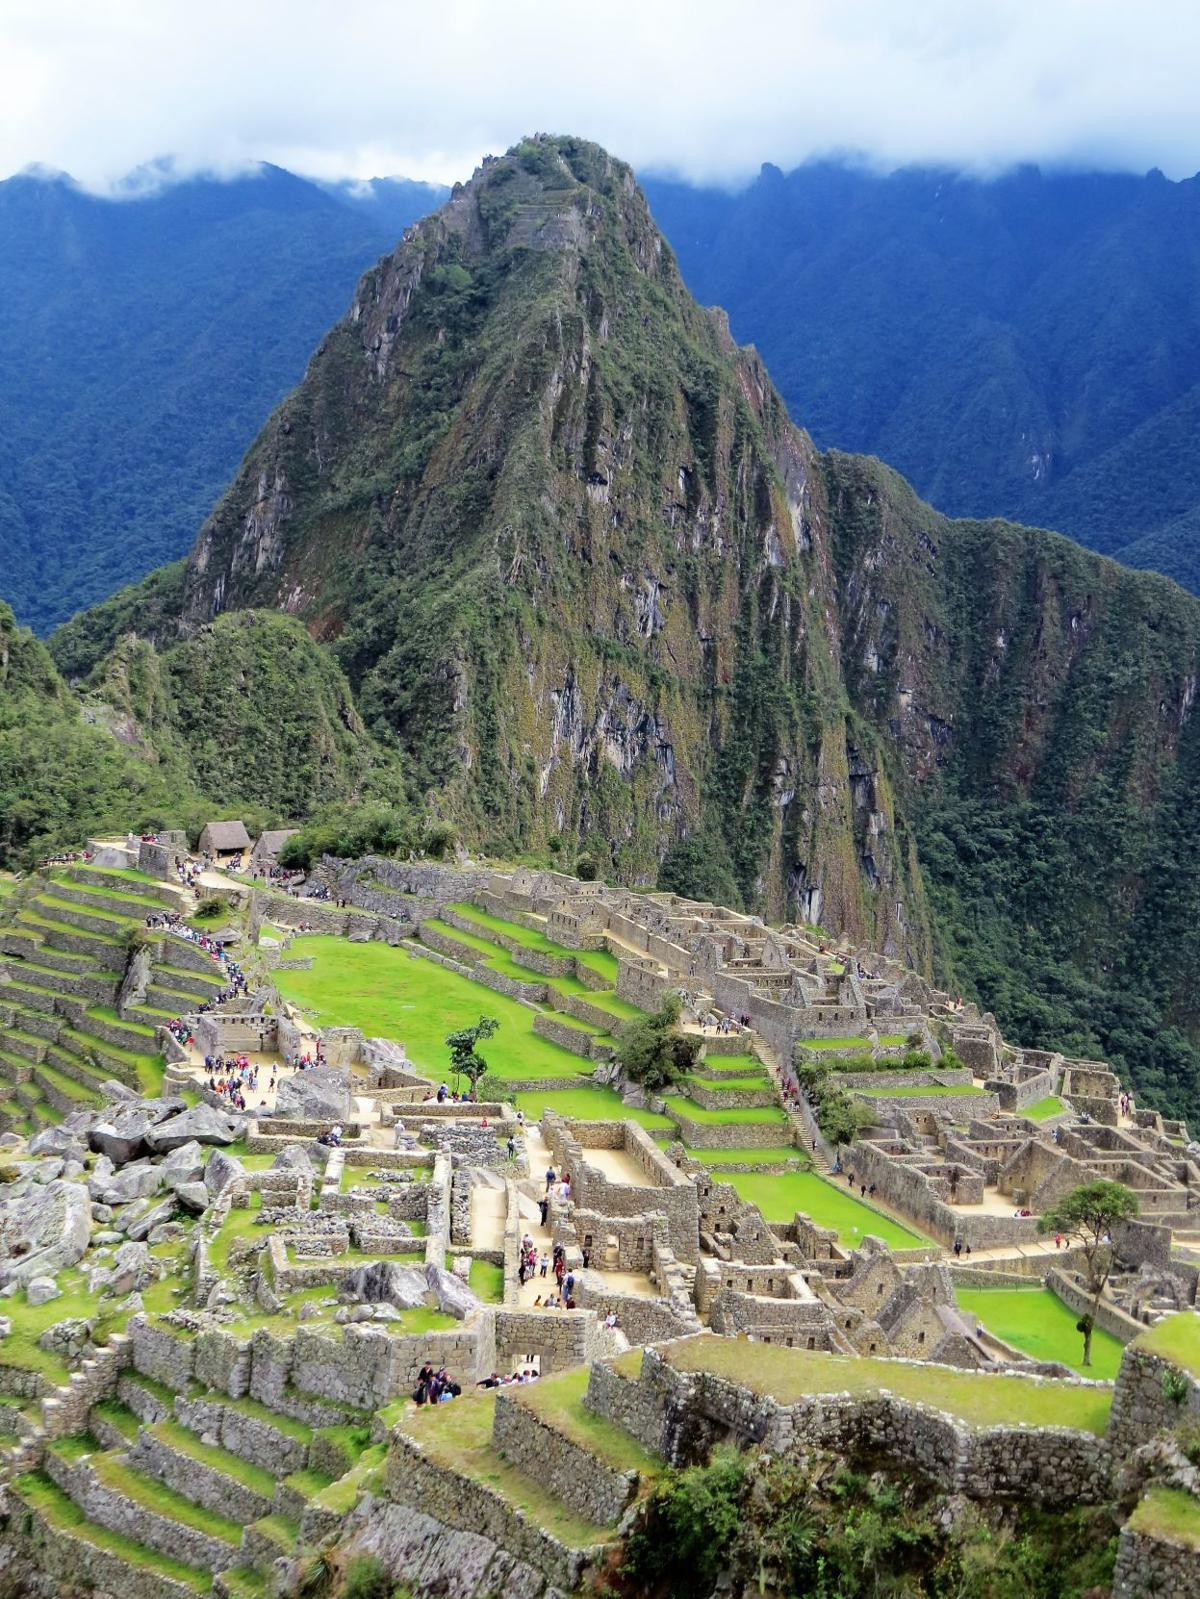 Machu Picchu Tours >> Customized Tours To Machu Picchu Galapagos Islands Are Packed With